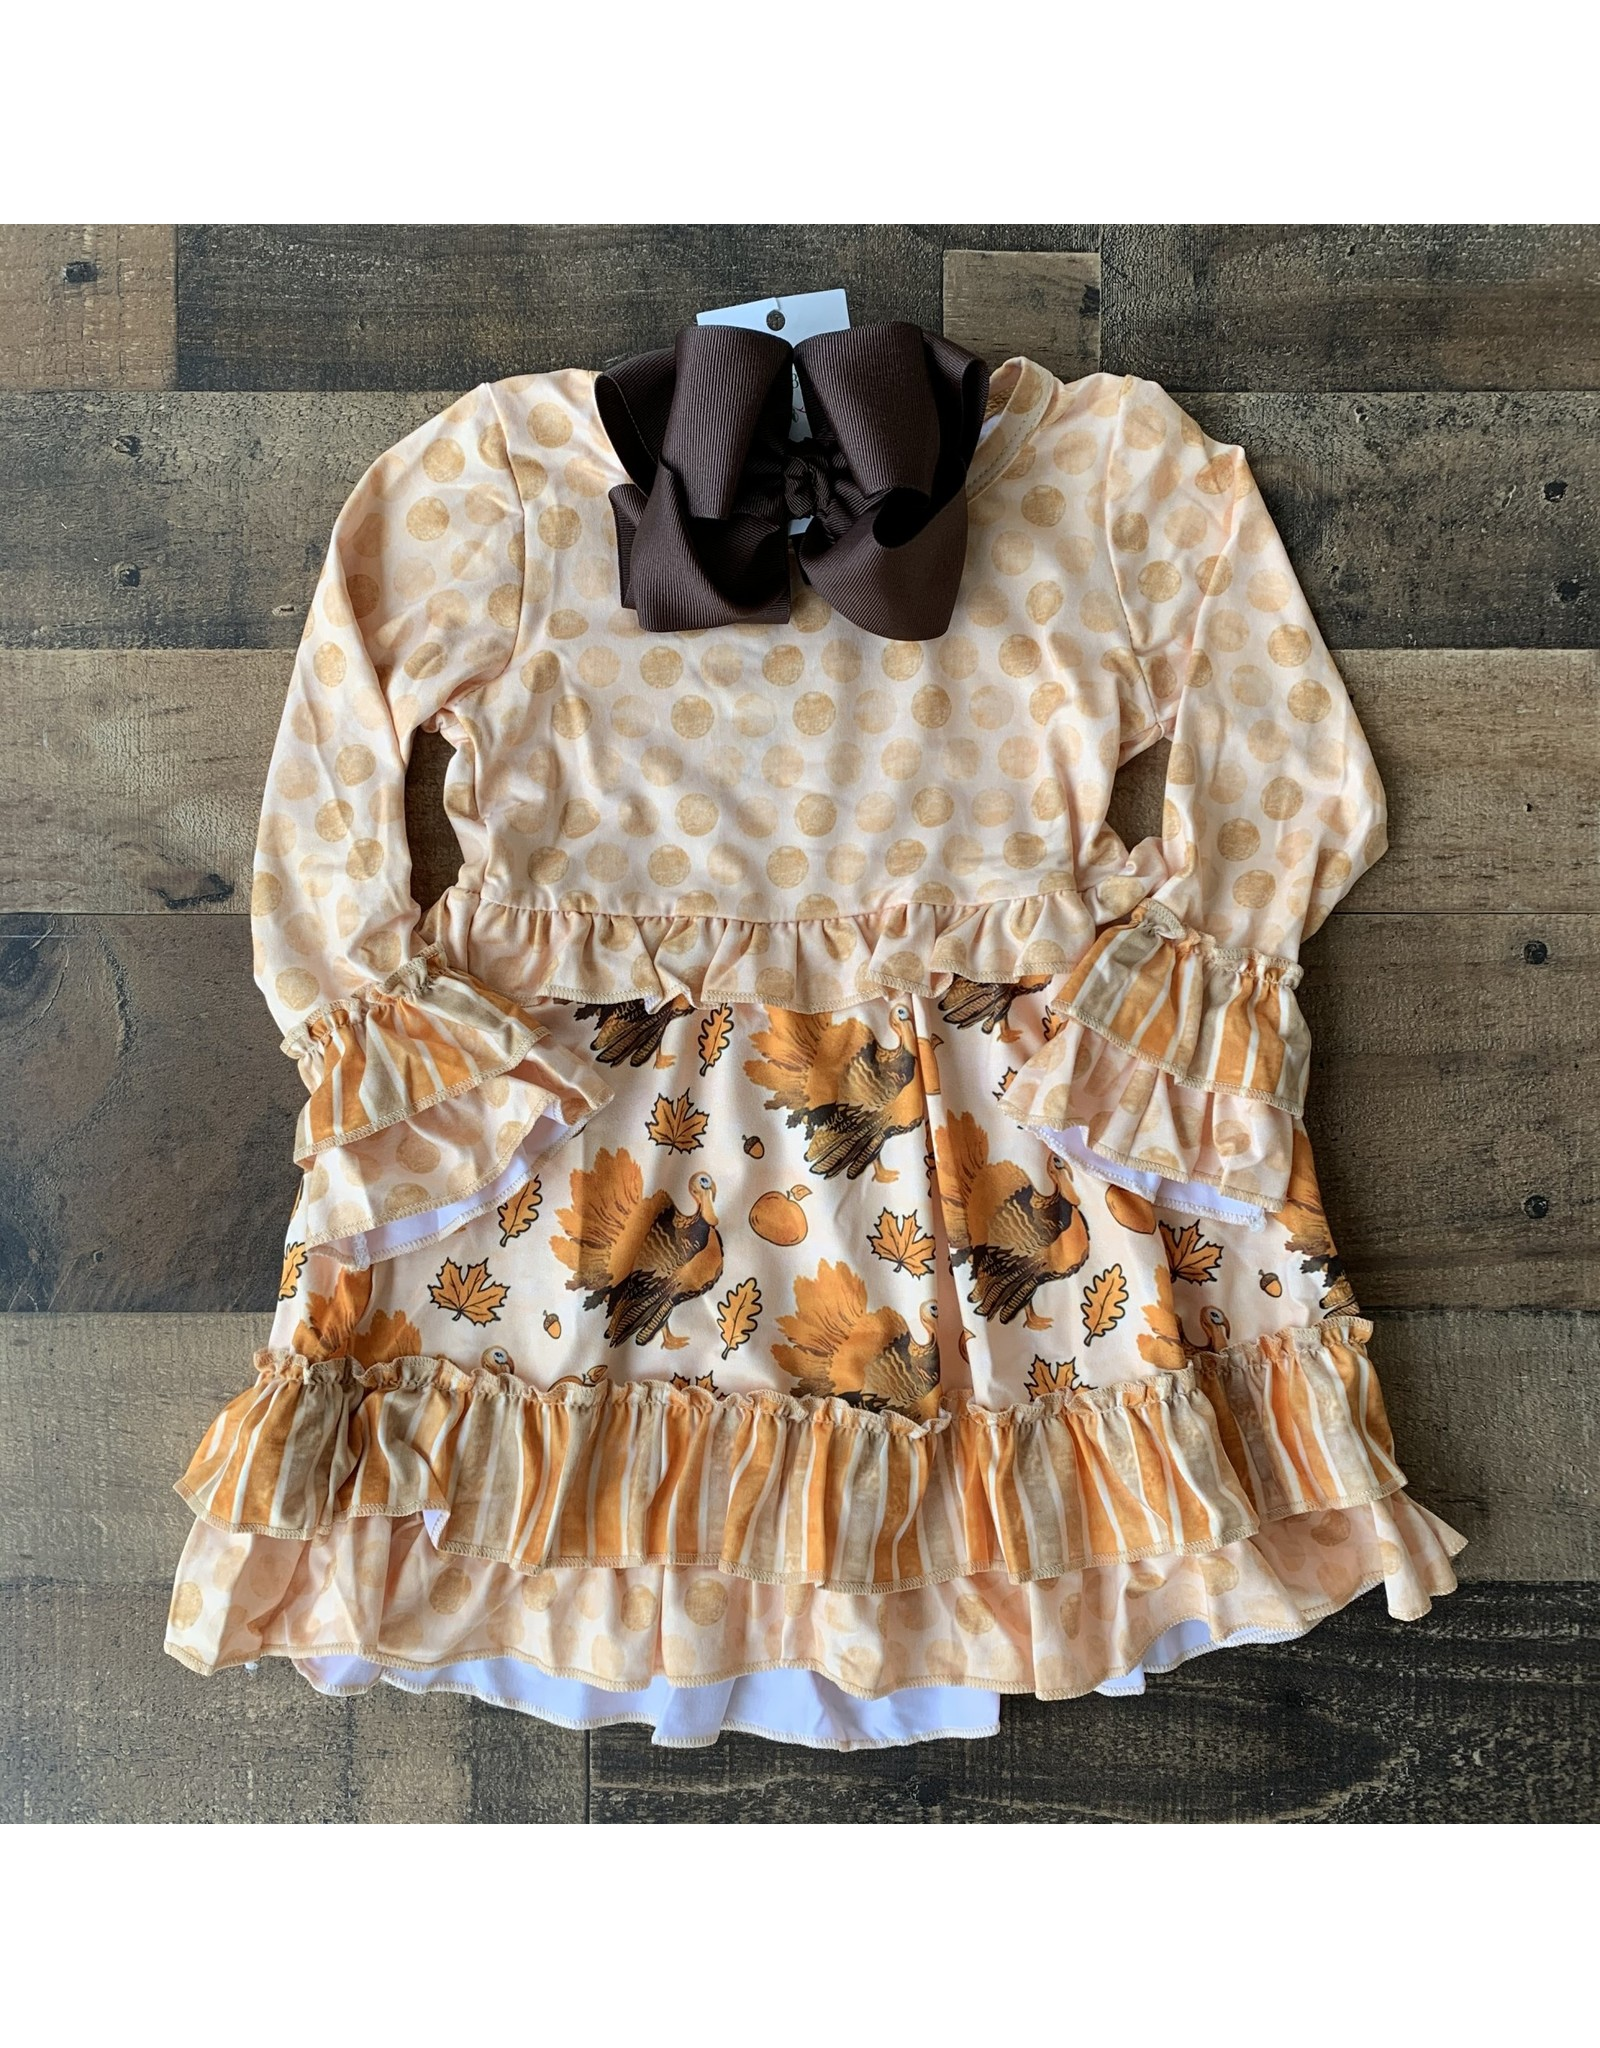 Harvest Dot Turkey Dress